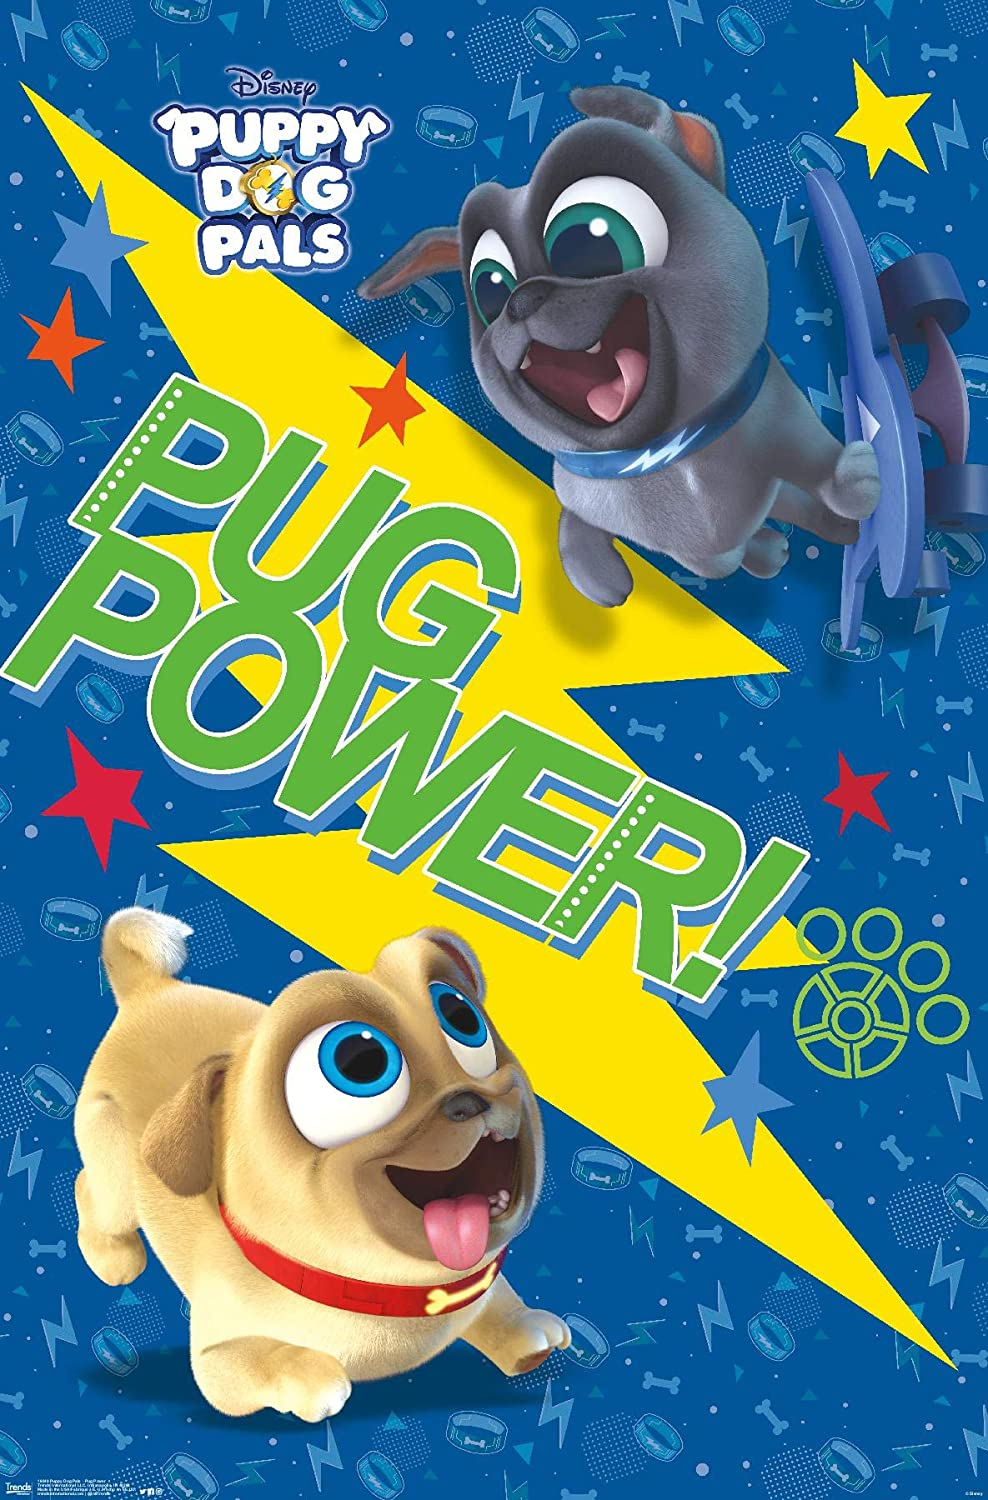 Amazon Com Trends International Disney Puppy Dog Pals Pug Power Wall Poster 22 375 X 34 Premium Unframed Version Posters Prints